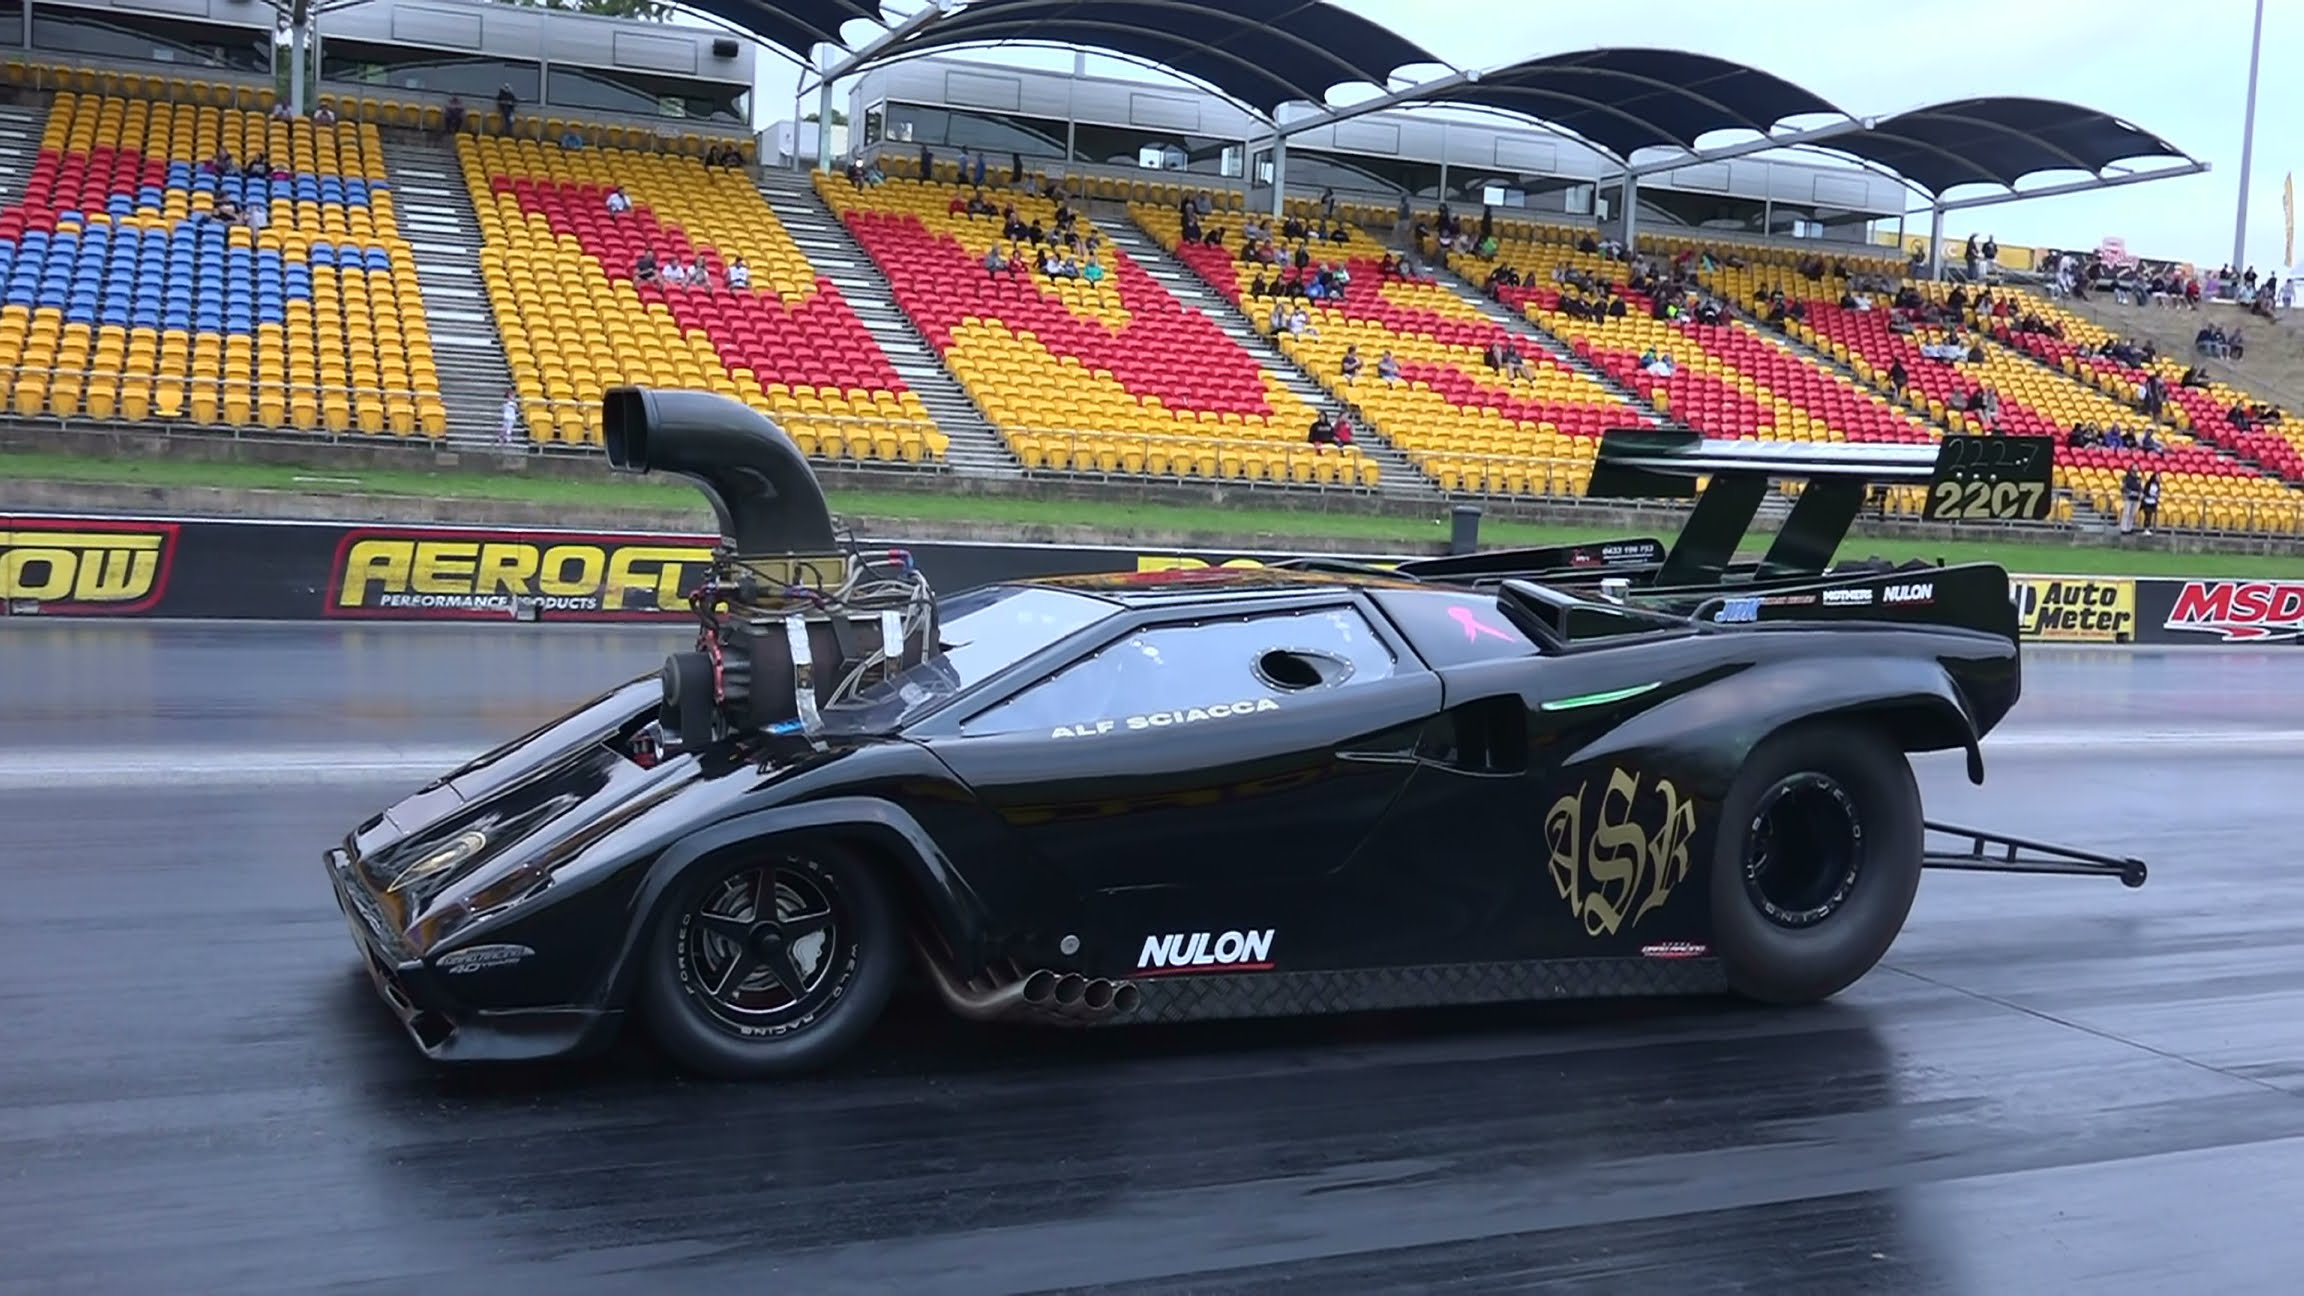 Supercharged V8 Lamborghini Drag Racer Is The Meanest Supercar You ...